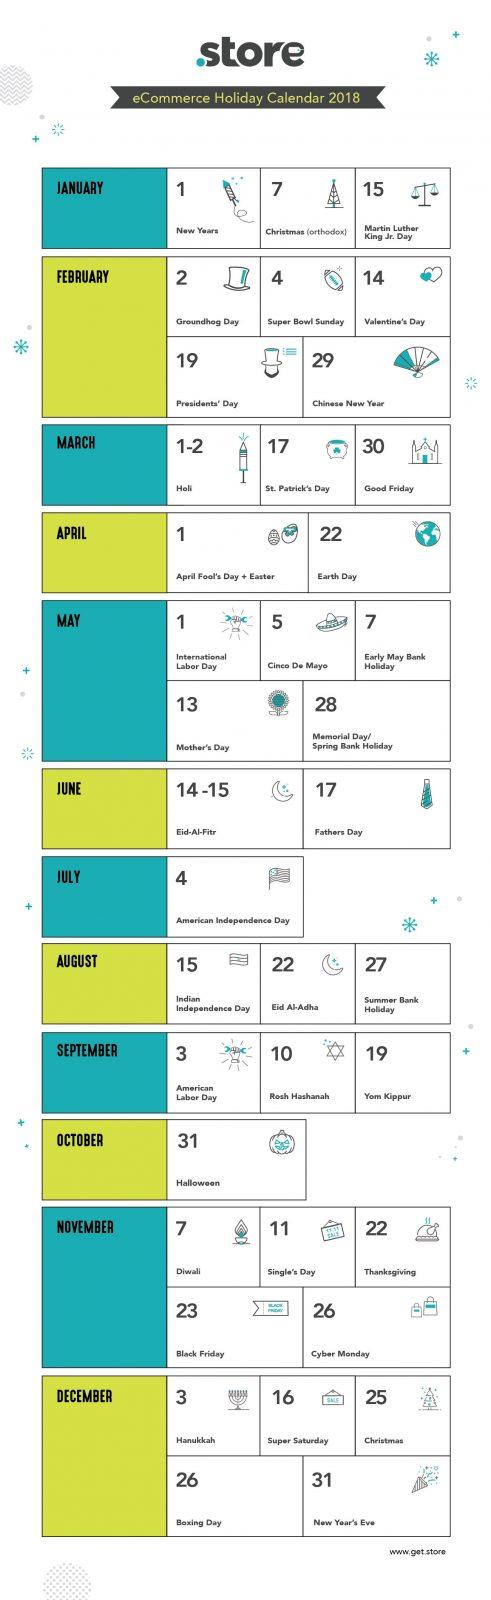 eCommere holiday calendar 2018